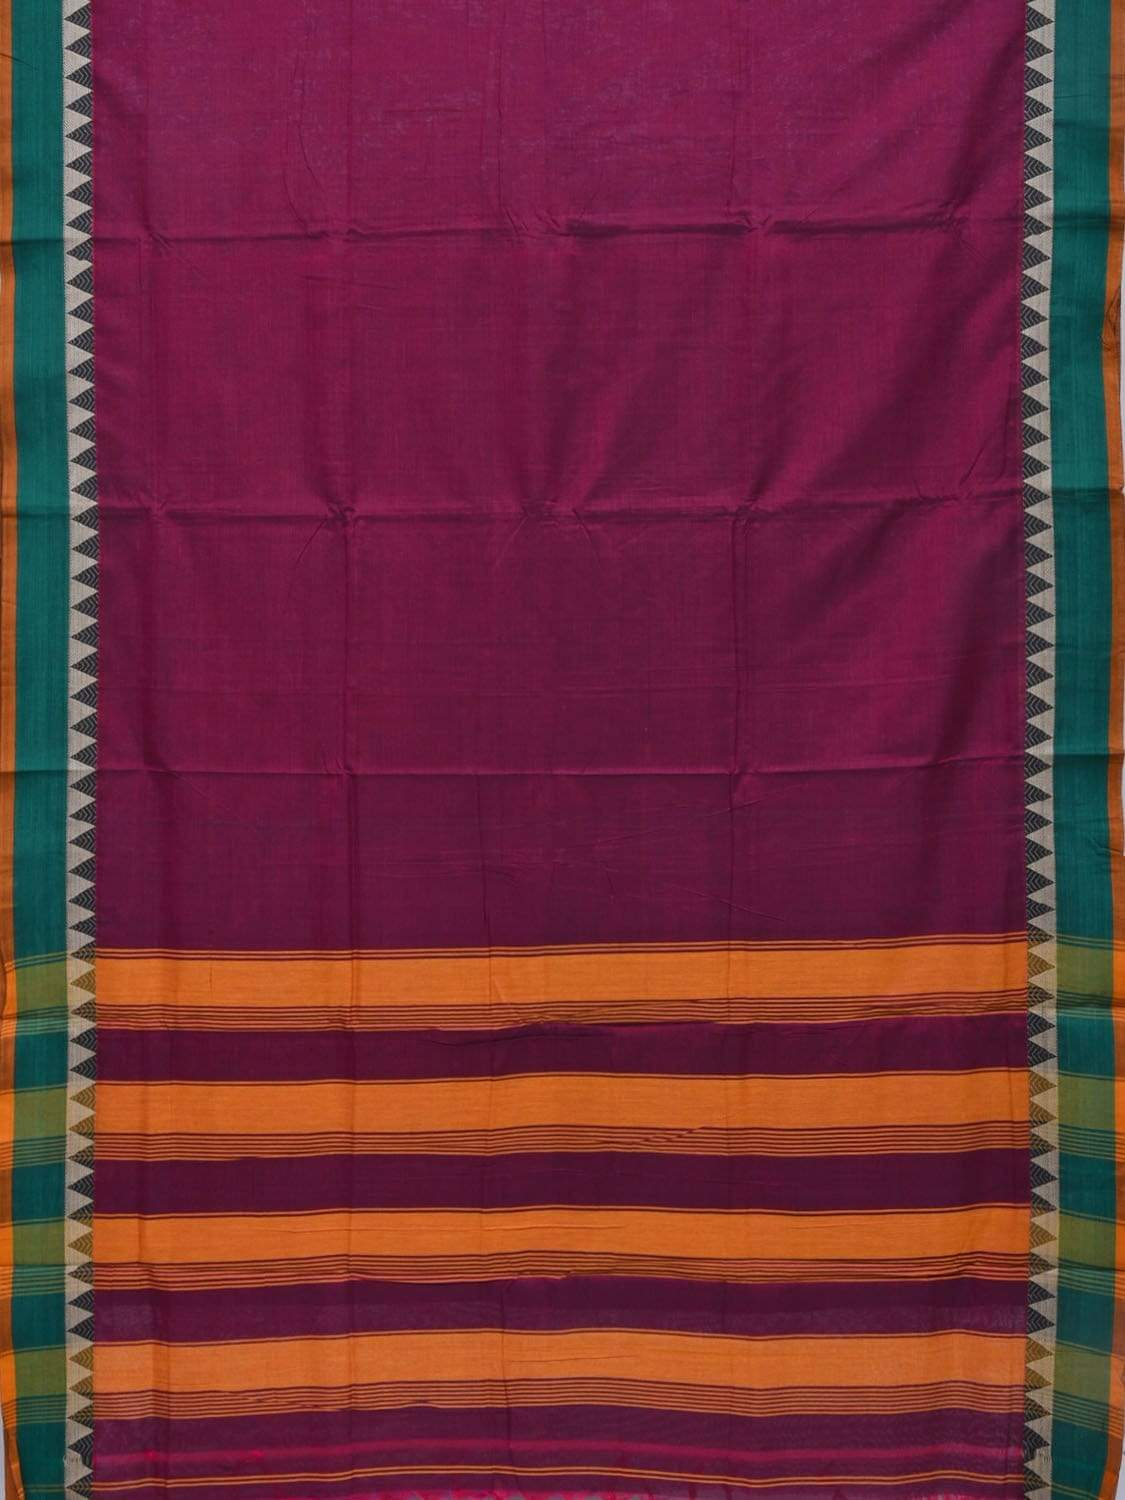 Purple Narayanpet Cotton Handloom Plain Saree with Temple Border Design No Blouse np0230